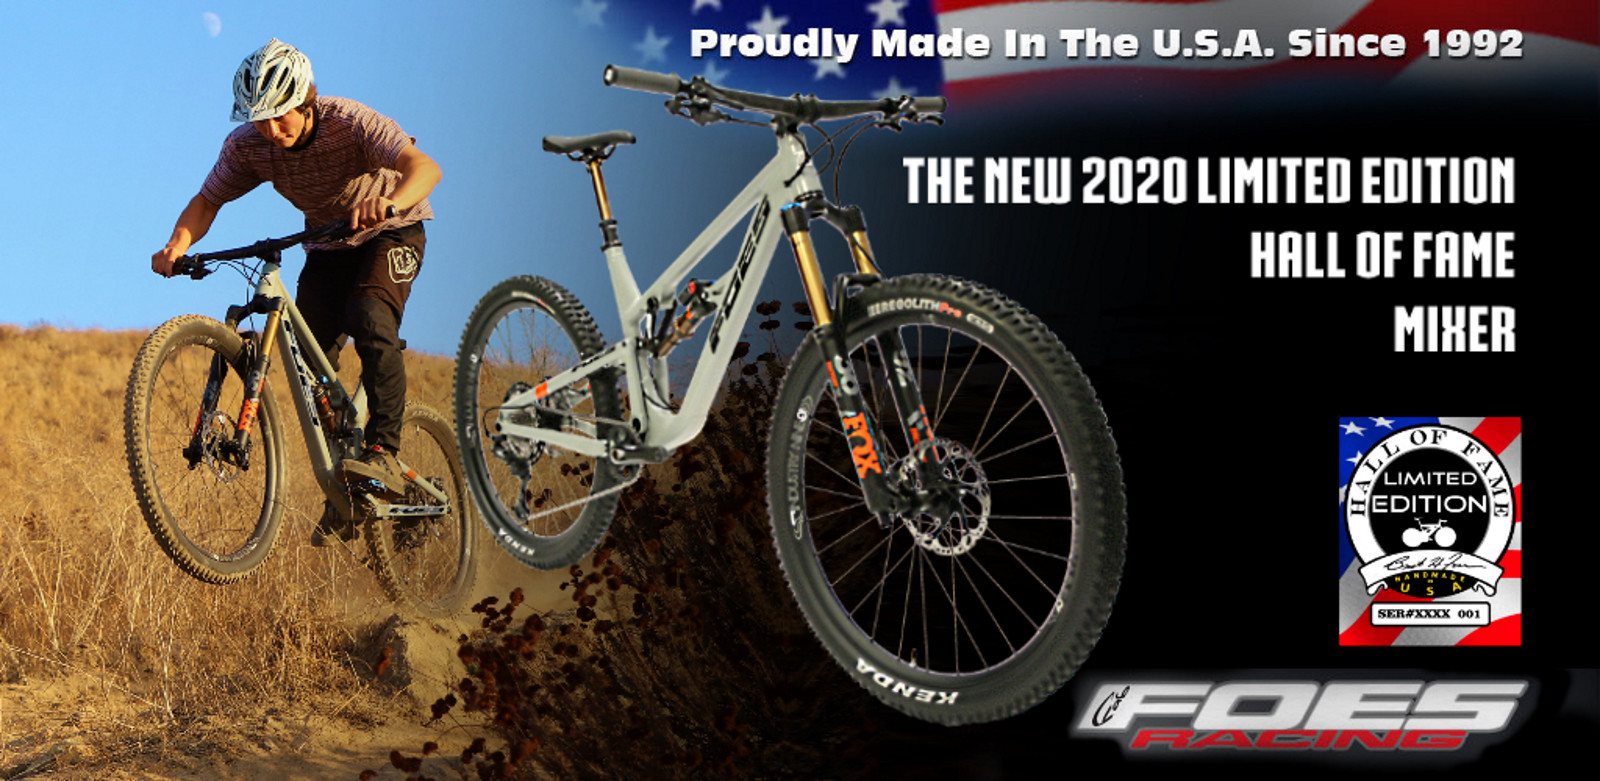 Foes Racing announces the debut of the new 2020 Limited Edition Hall of Fame Mixer